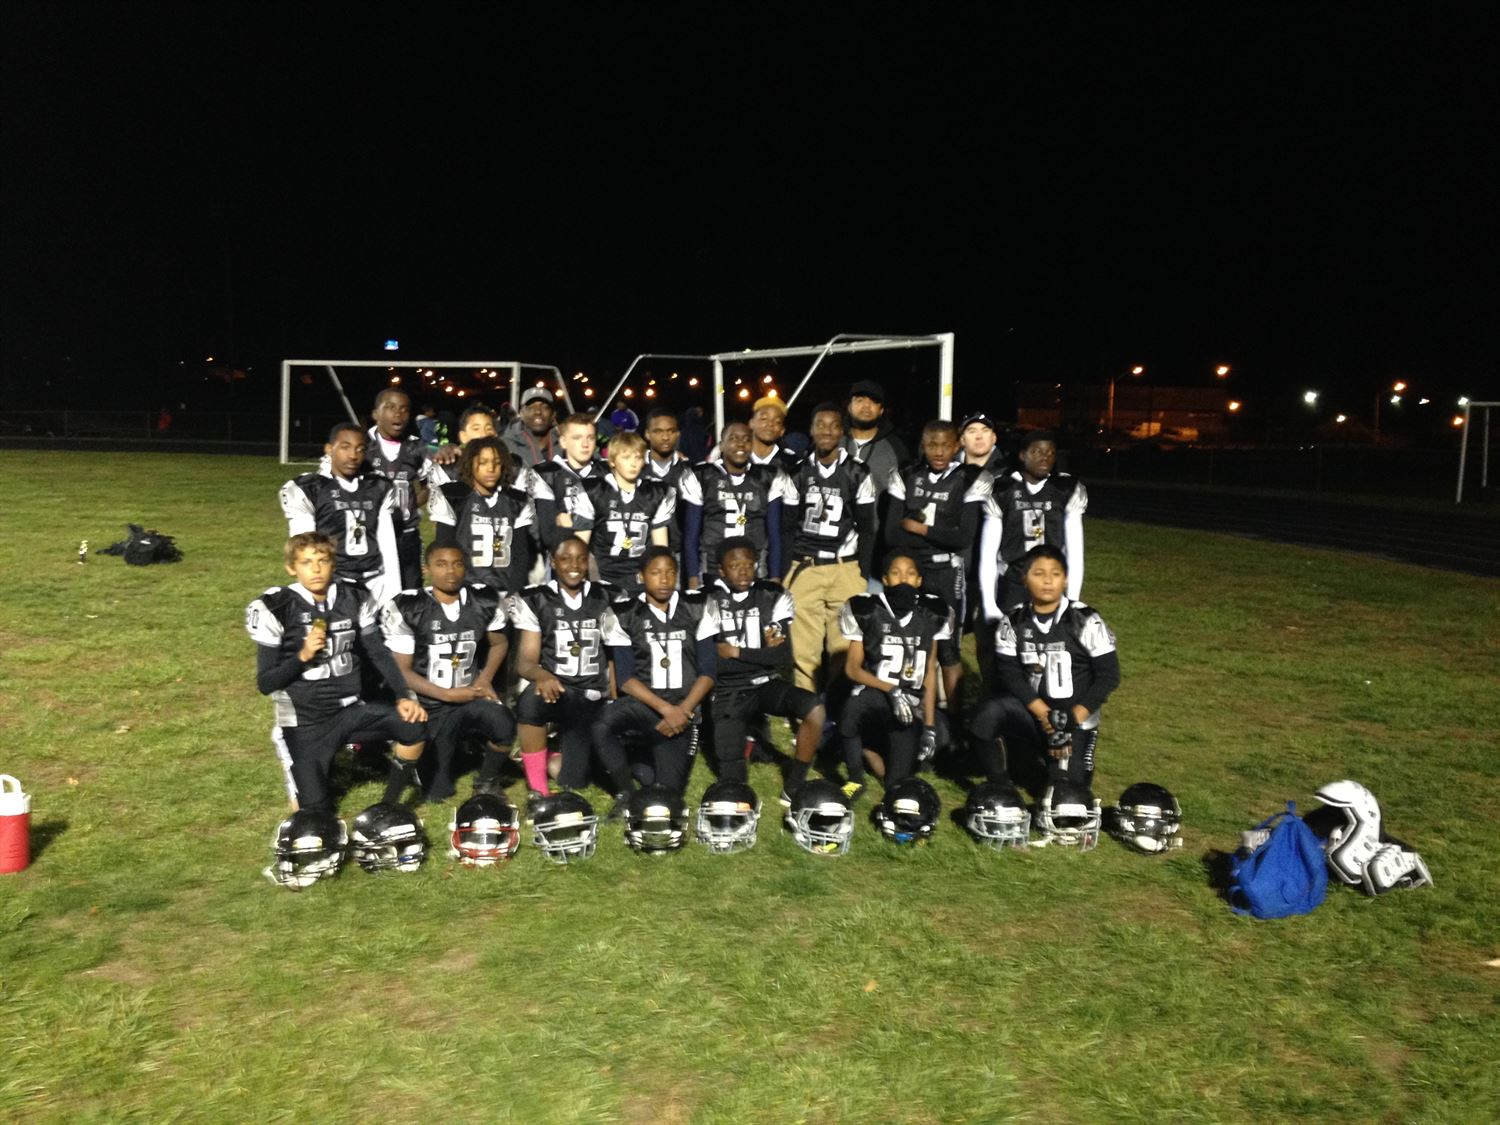 Alvin McCoy Youth Teams - Montgomery County Knights